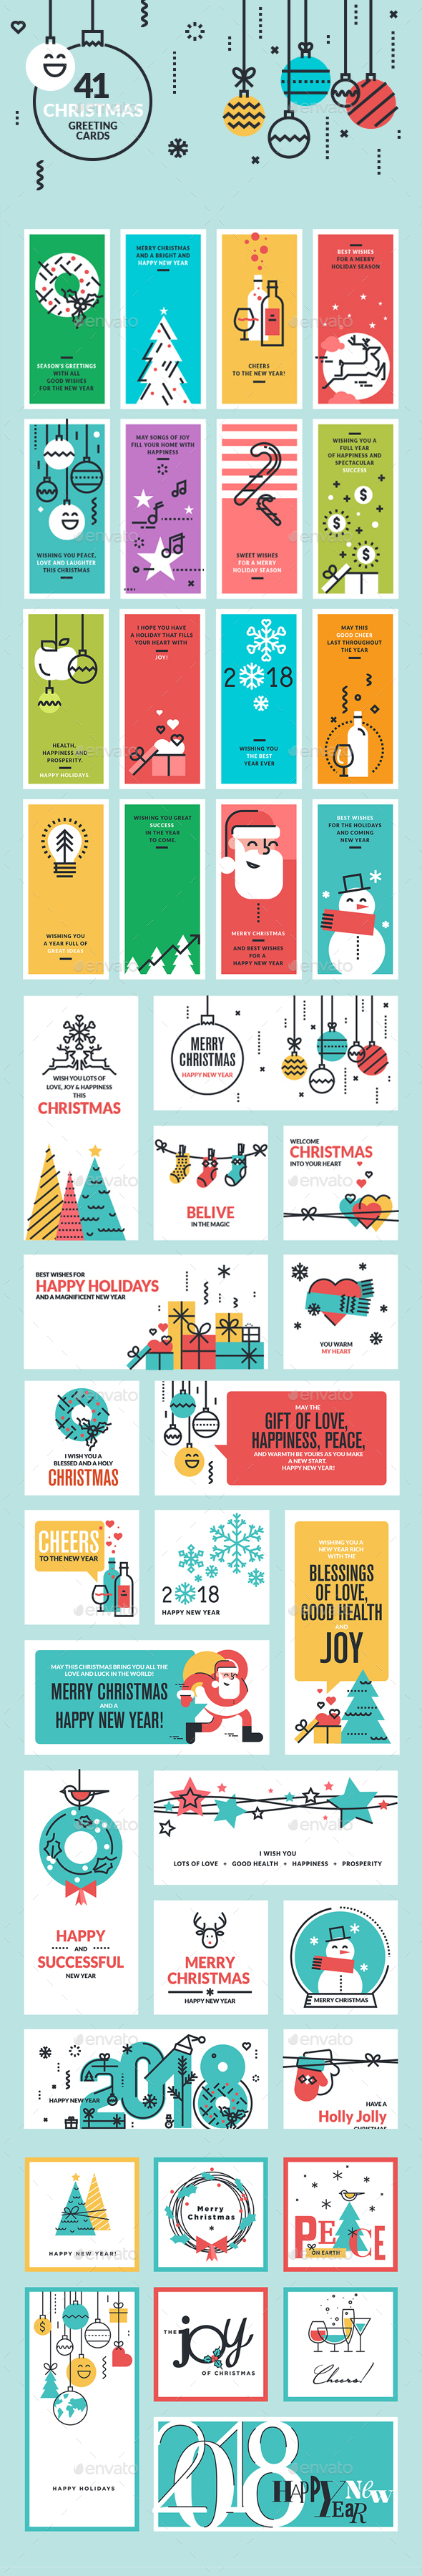 2018 Christmas and New Year Greeting Cards and Banners - Christmas Seasons/Holidays